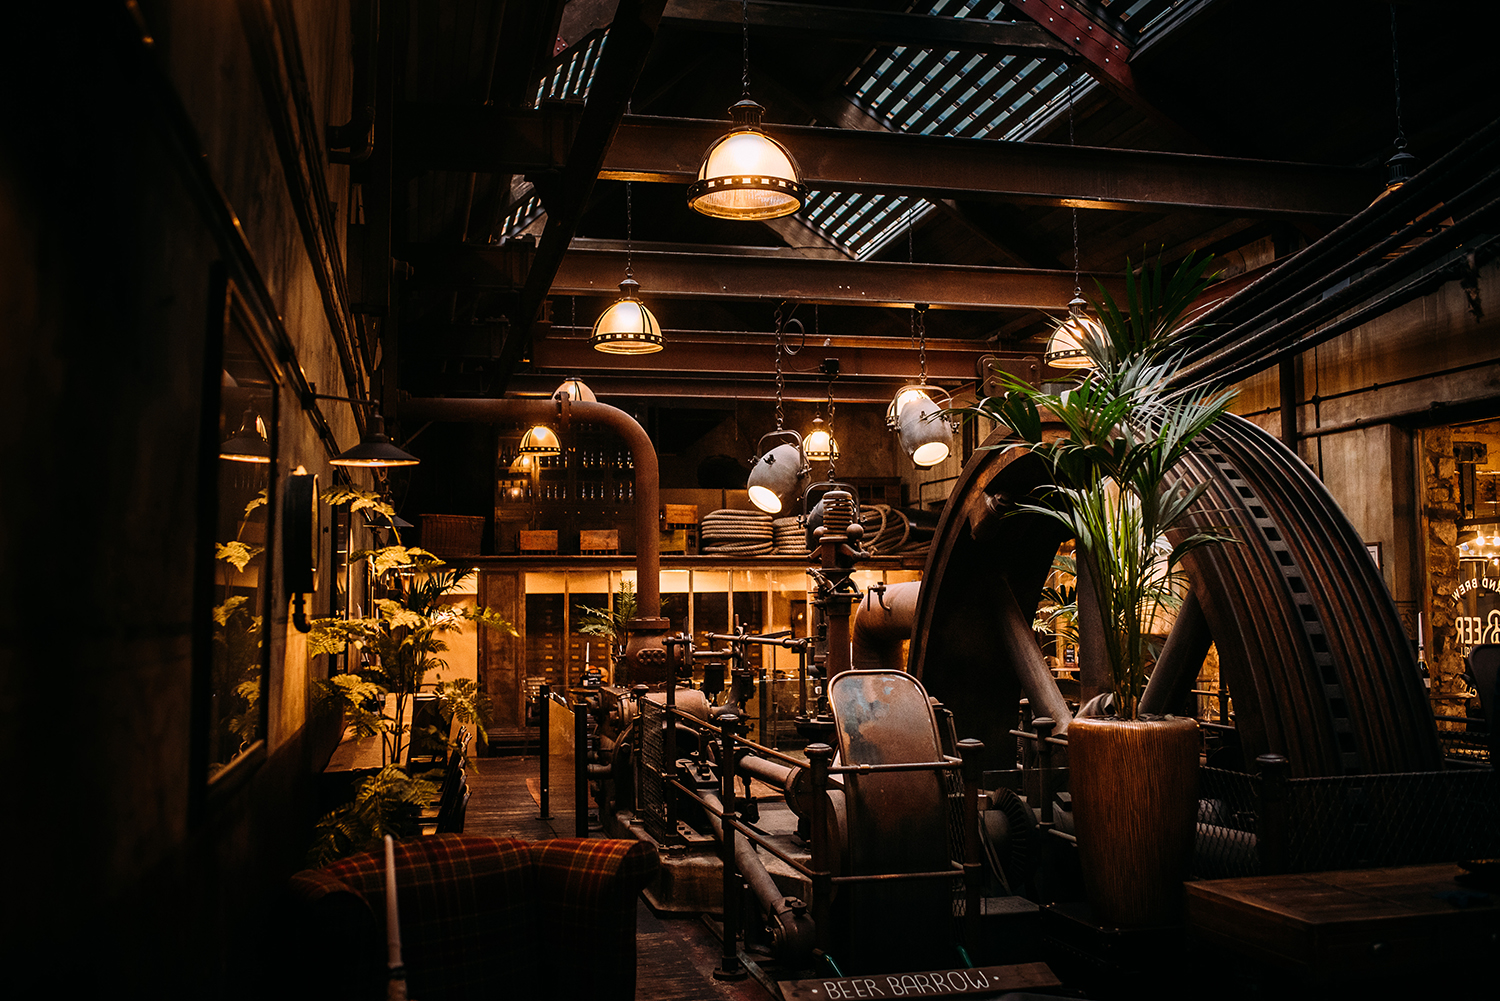 The engine room at Holmes mill